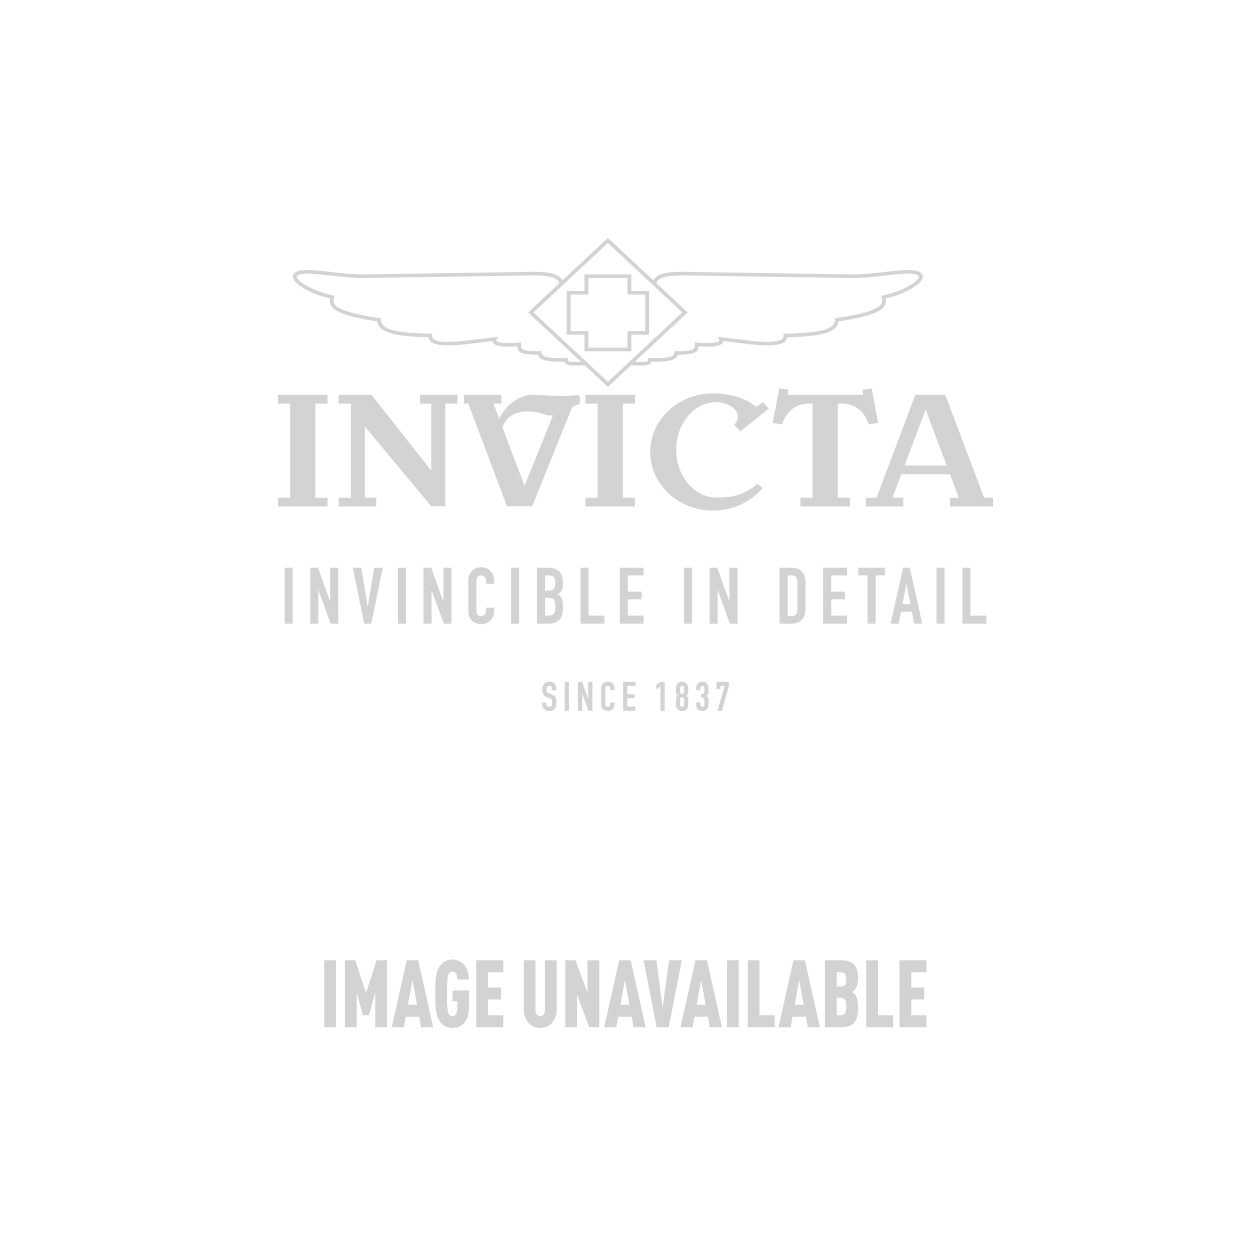 Invicta Reserve Swiss Made Quartz Watch - Blue, Stainless Steel case Stainless Steel band - Model 11864